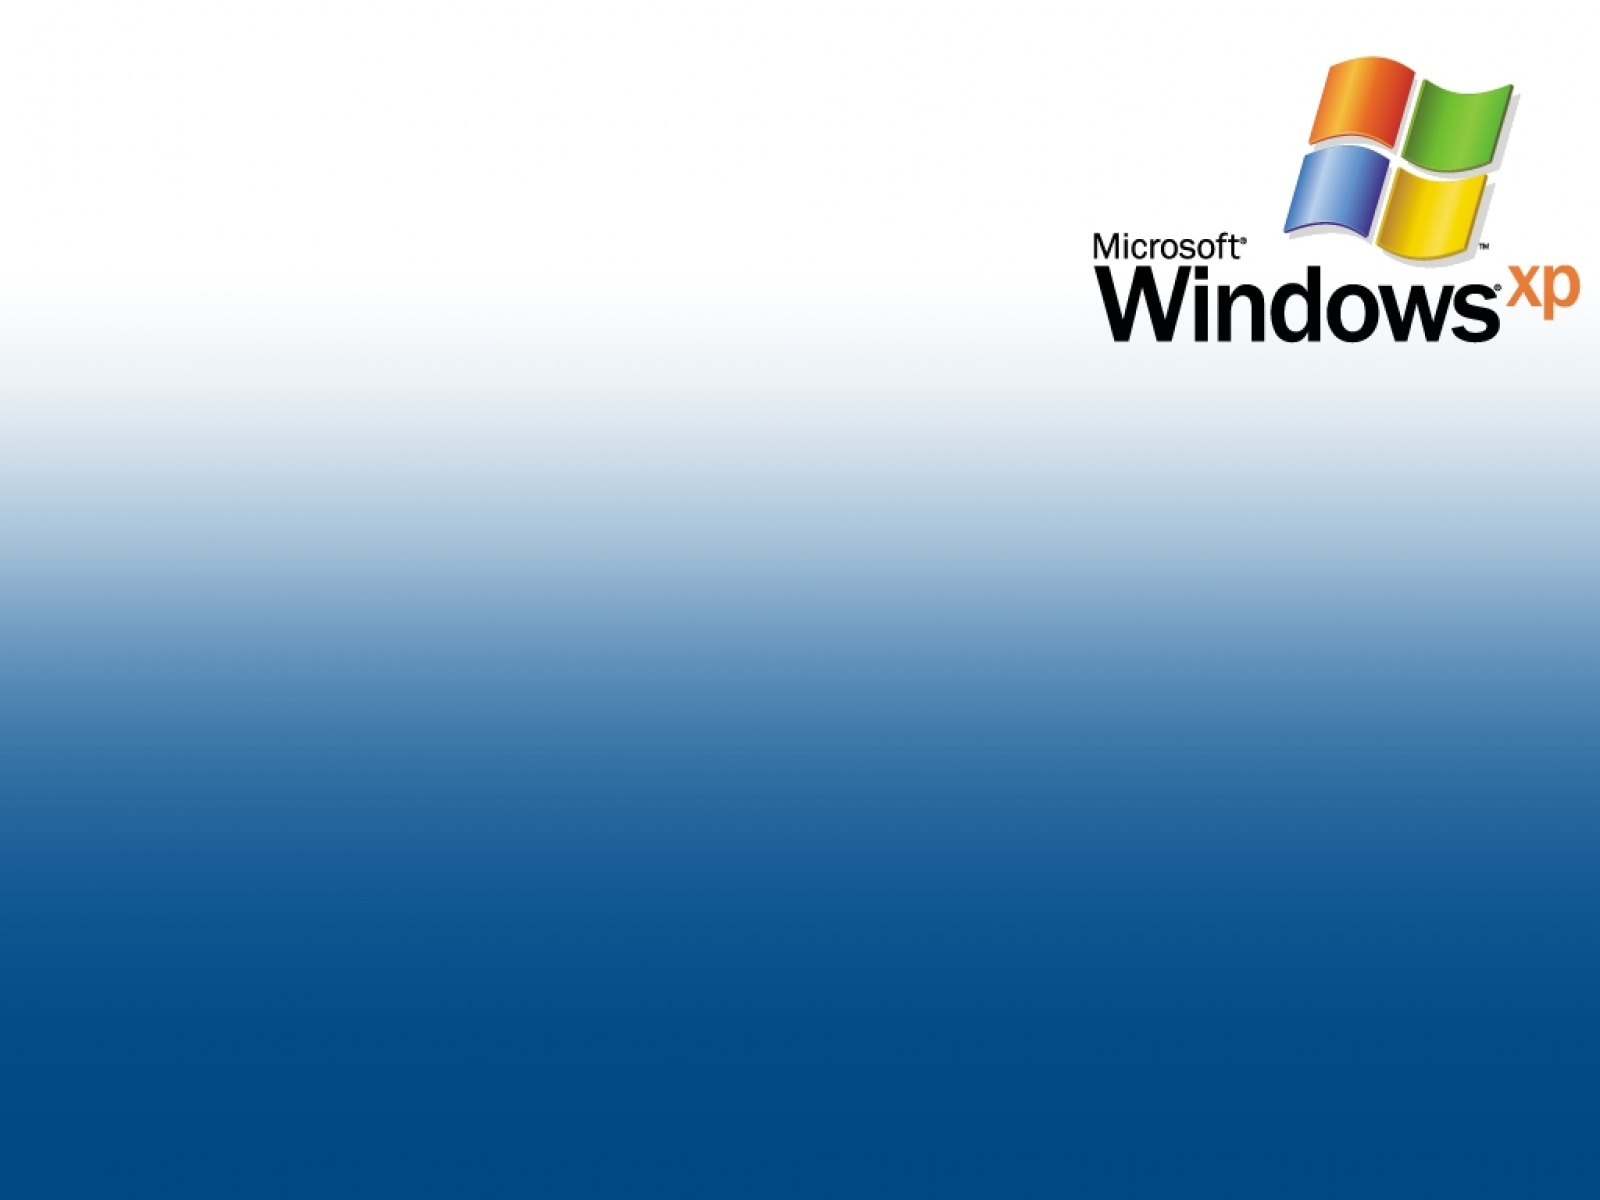 Huge hd wallpapers natural windows xp wallpapers for Microsoft windows windows